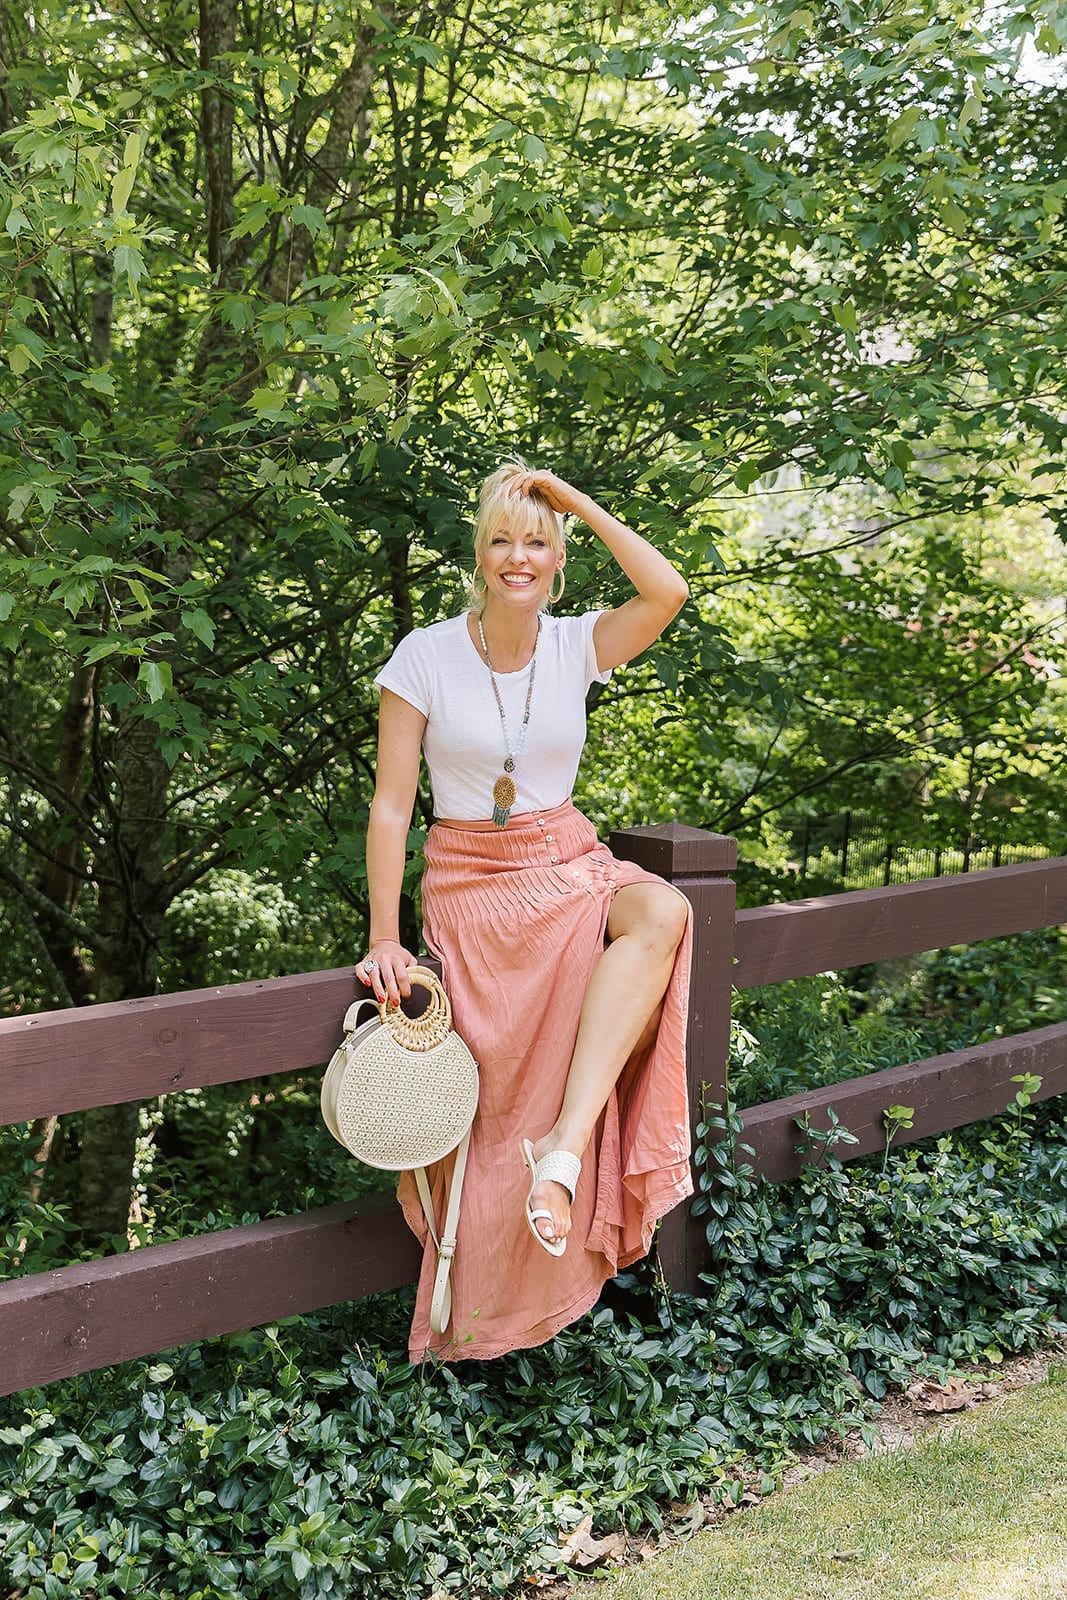 Revolve Skirts. How to wear a maxi skirt without shirt coming out. Summer fashion style for women.